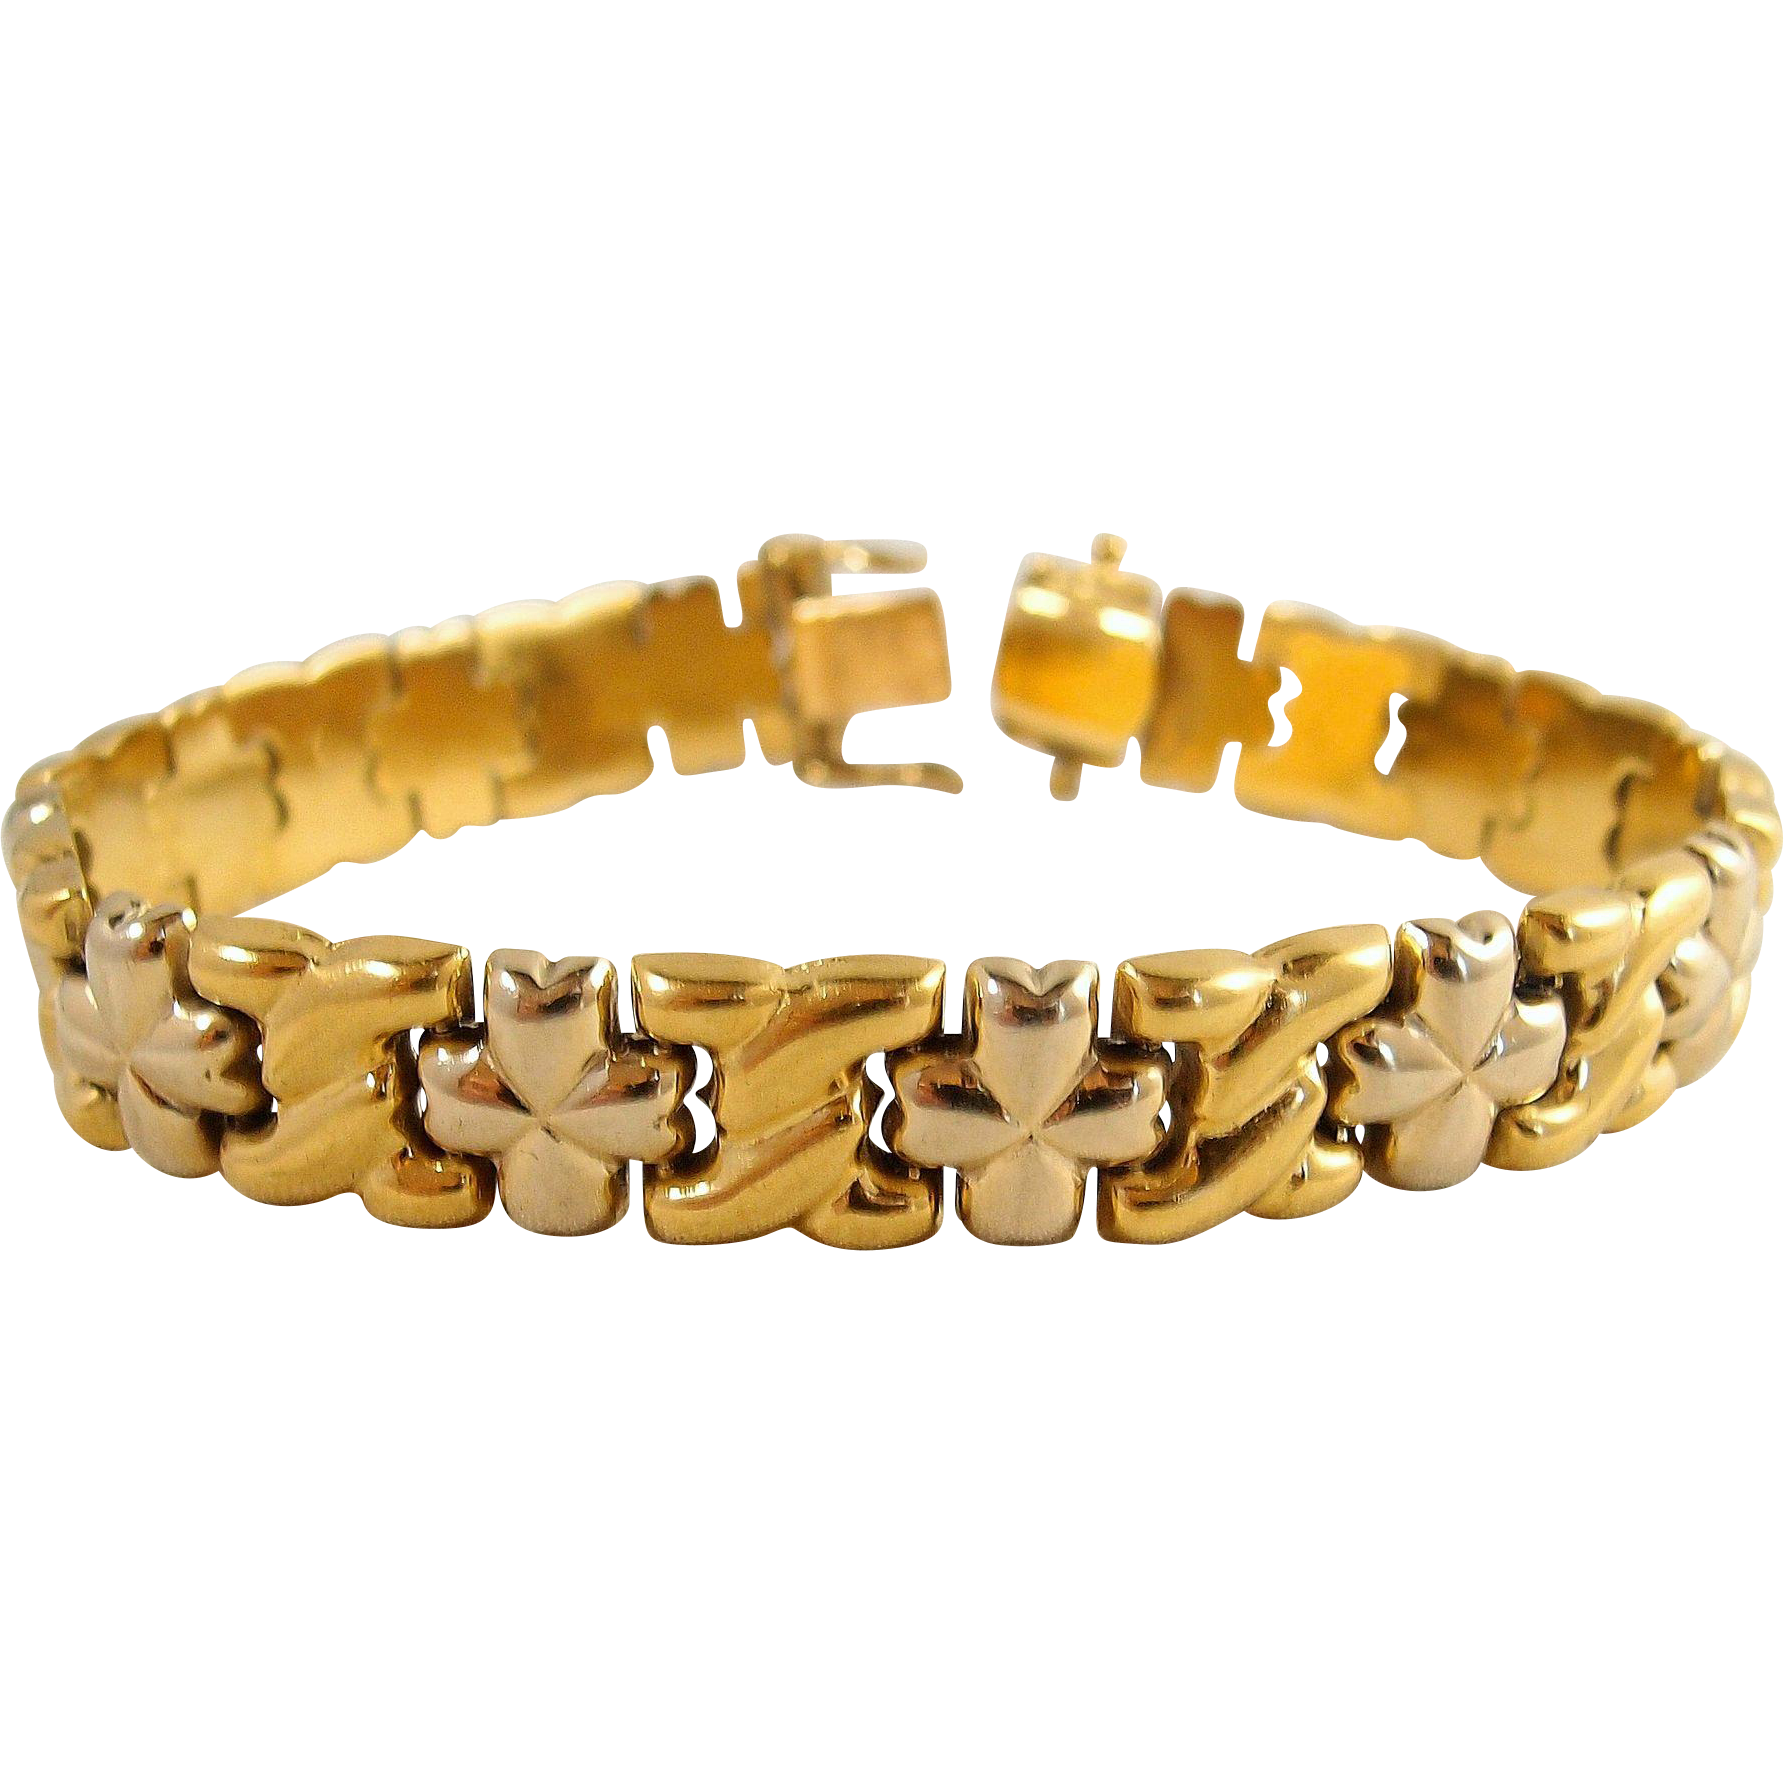 id bracelet z large jewelry cartier j bangle yellow rolling bracelets rose bangles trinity gold white at